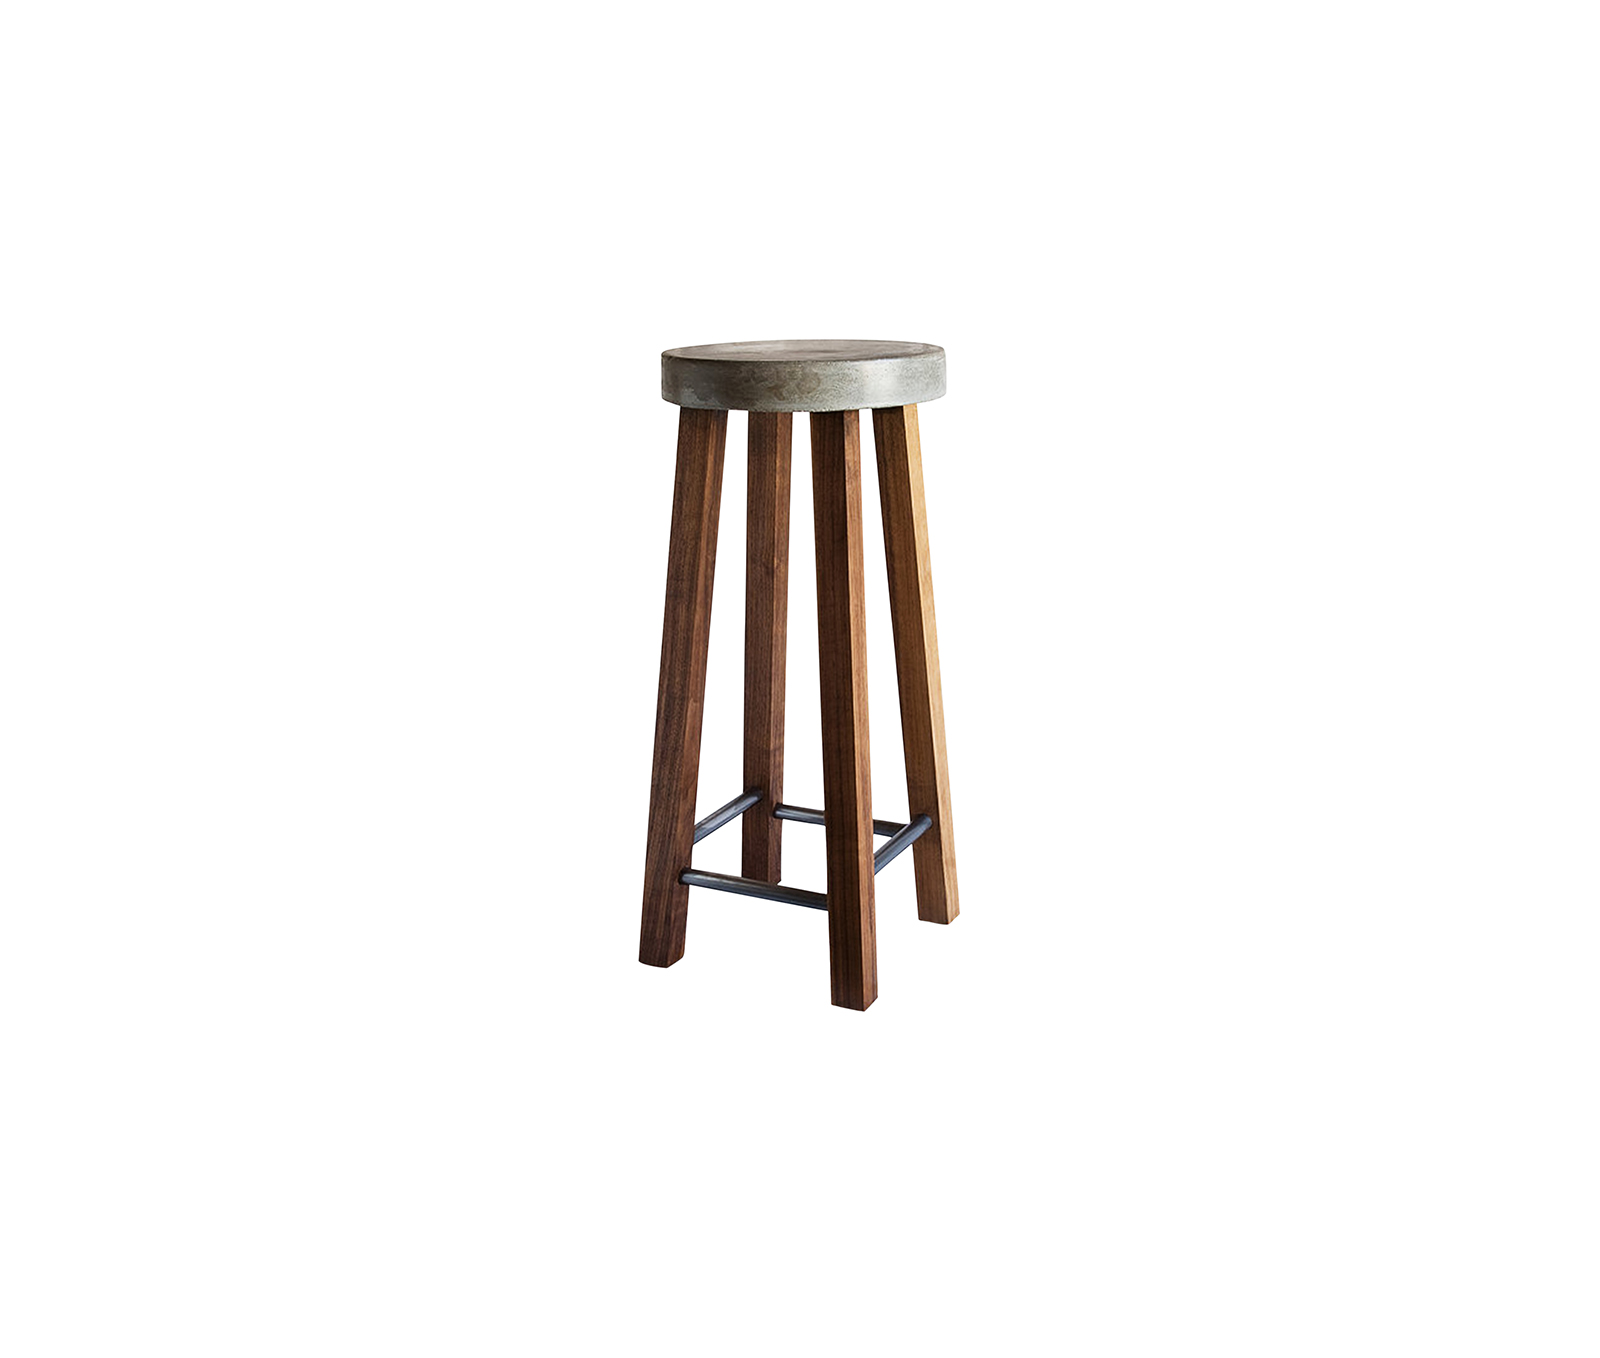 Concrete stool, with walnut legs, and steel foot rests